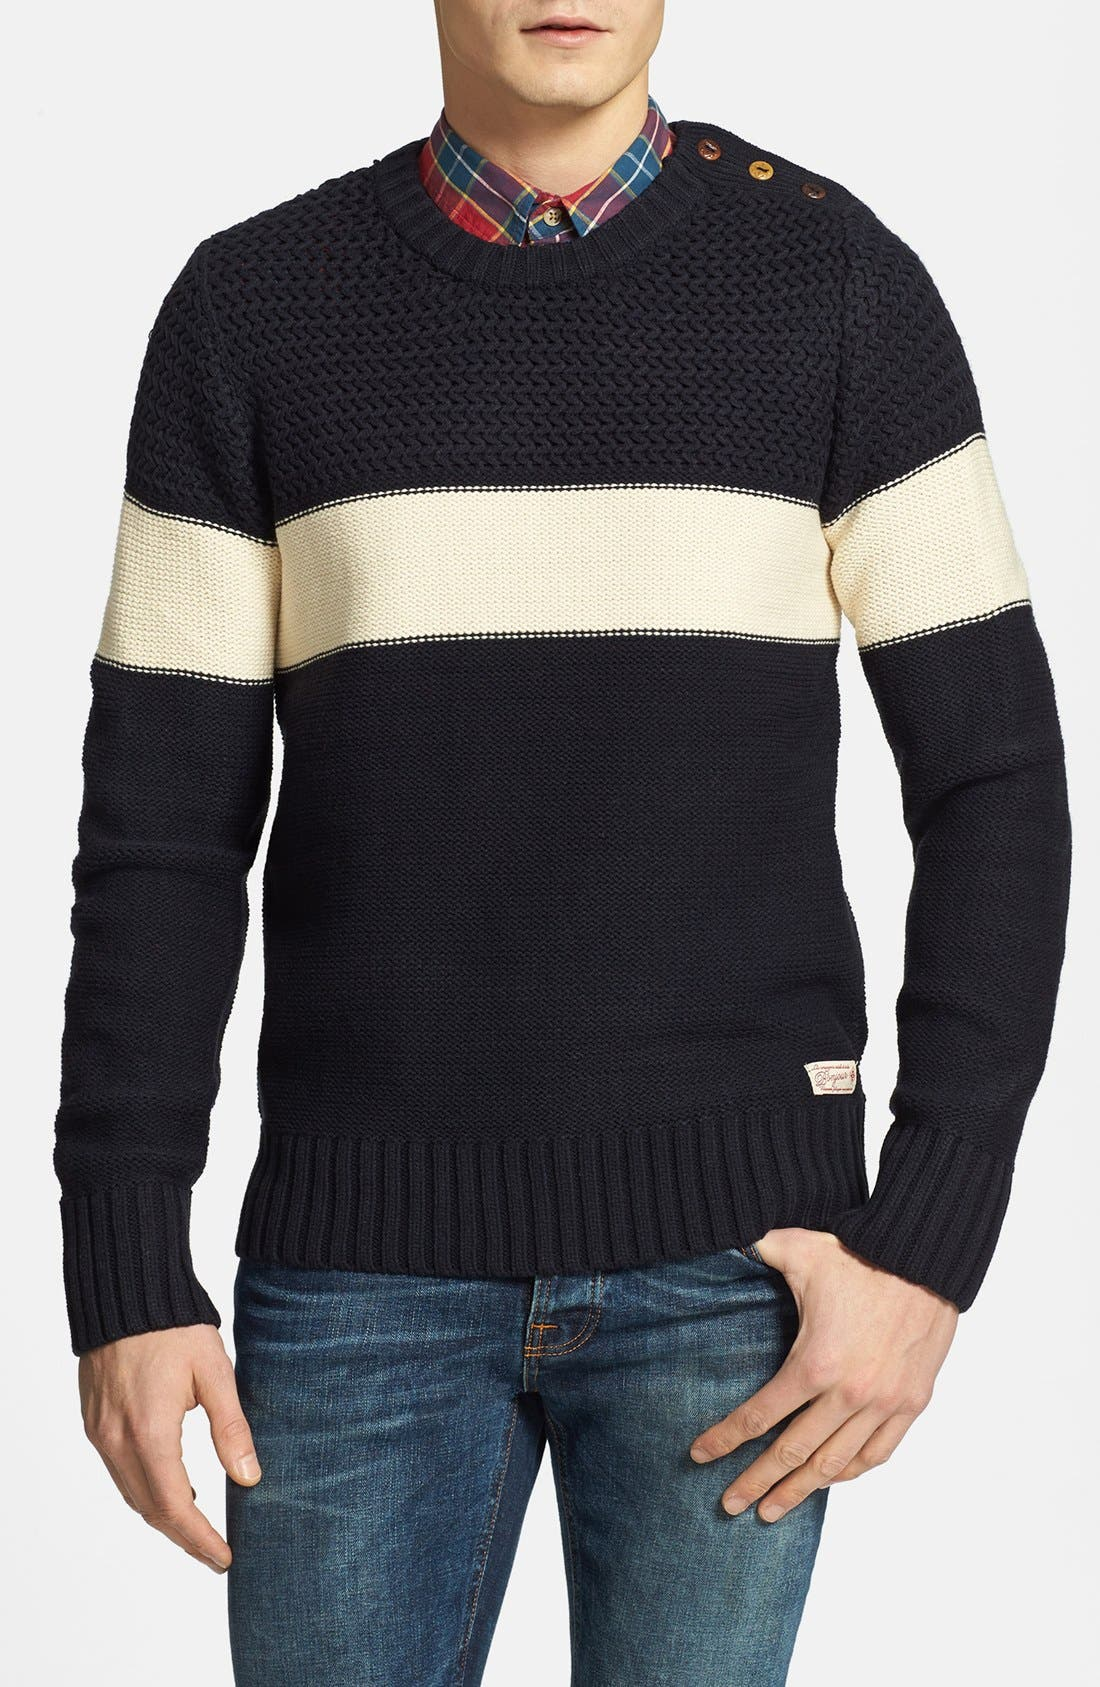 Main Image - Scotch & Soda Cable Knit Stripe Crewneck Sweater